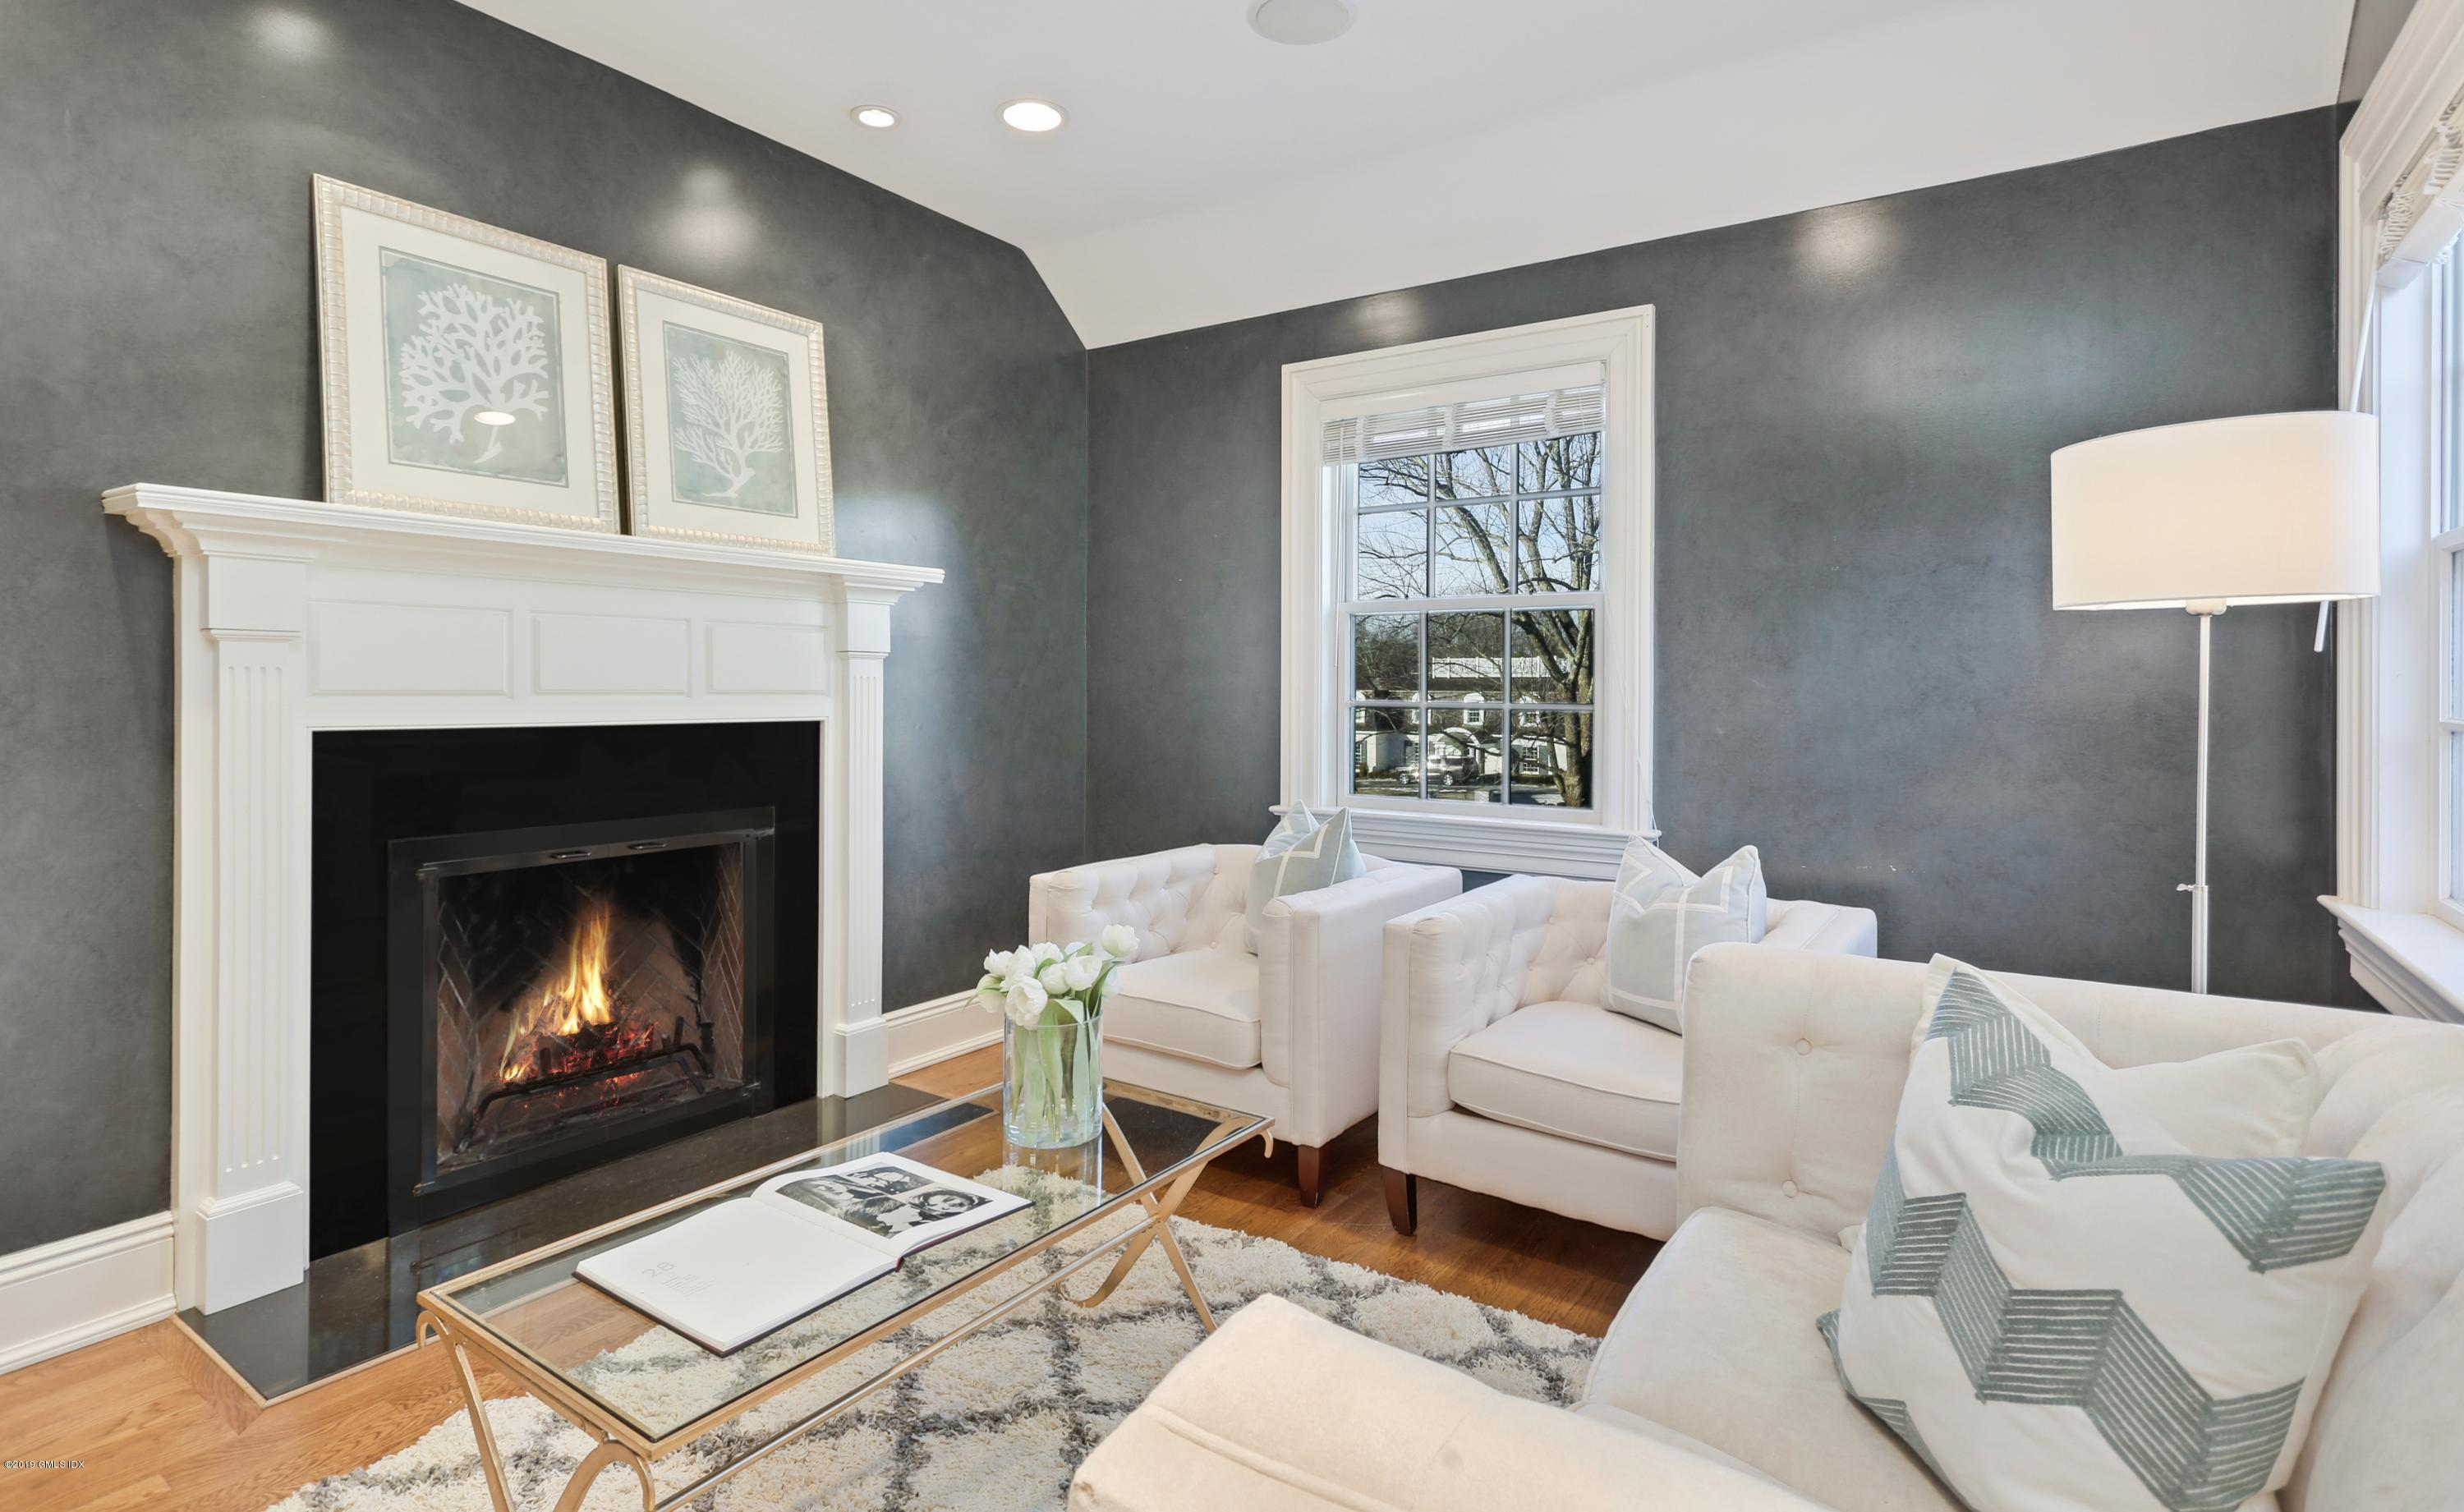 20 Lindsay Drive,Greenwich,Connecticut 06830,5 Bedrooms Bedrooms,6 BathroomsBathrooms,Single family,Lindsay,107273